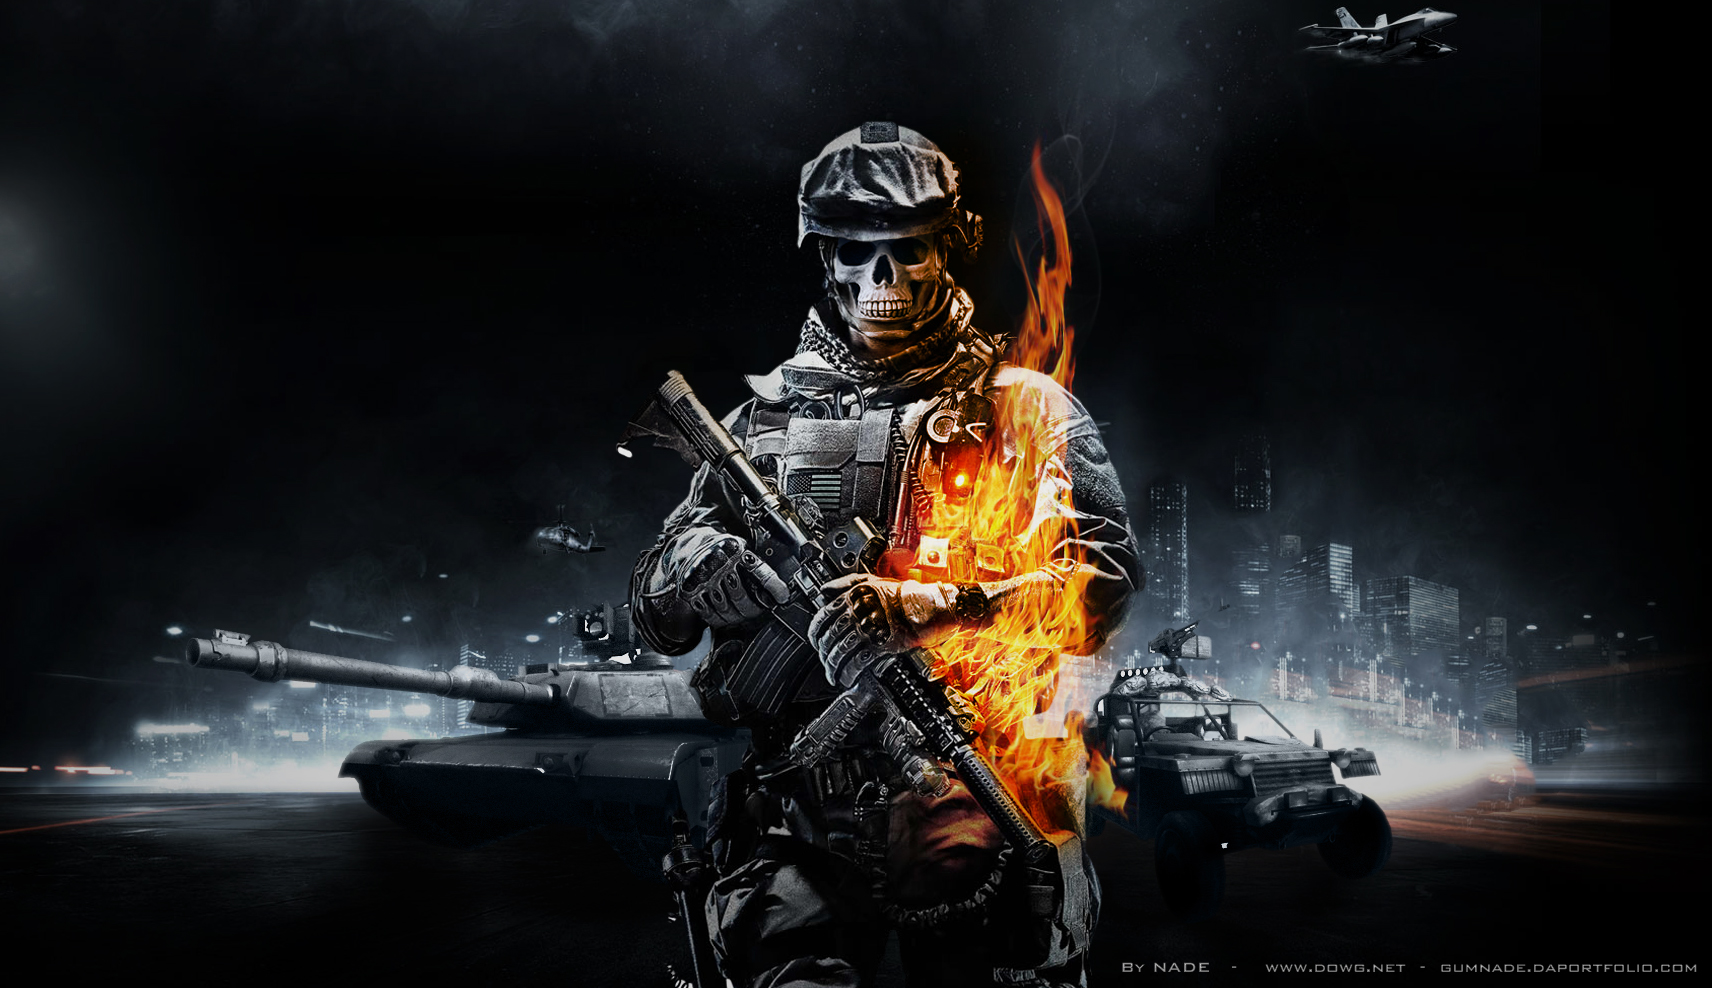 Battlefield 3 by GuMNade on DeviantArt